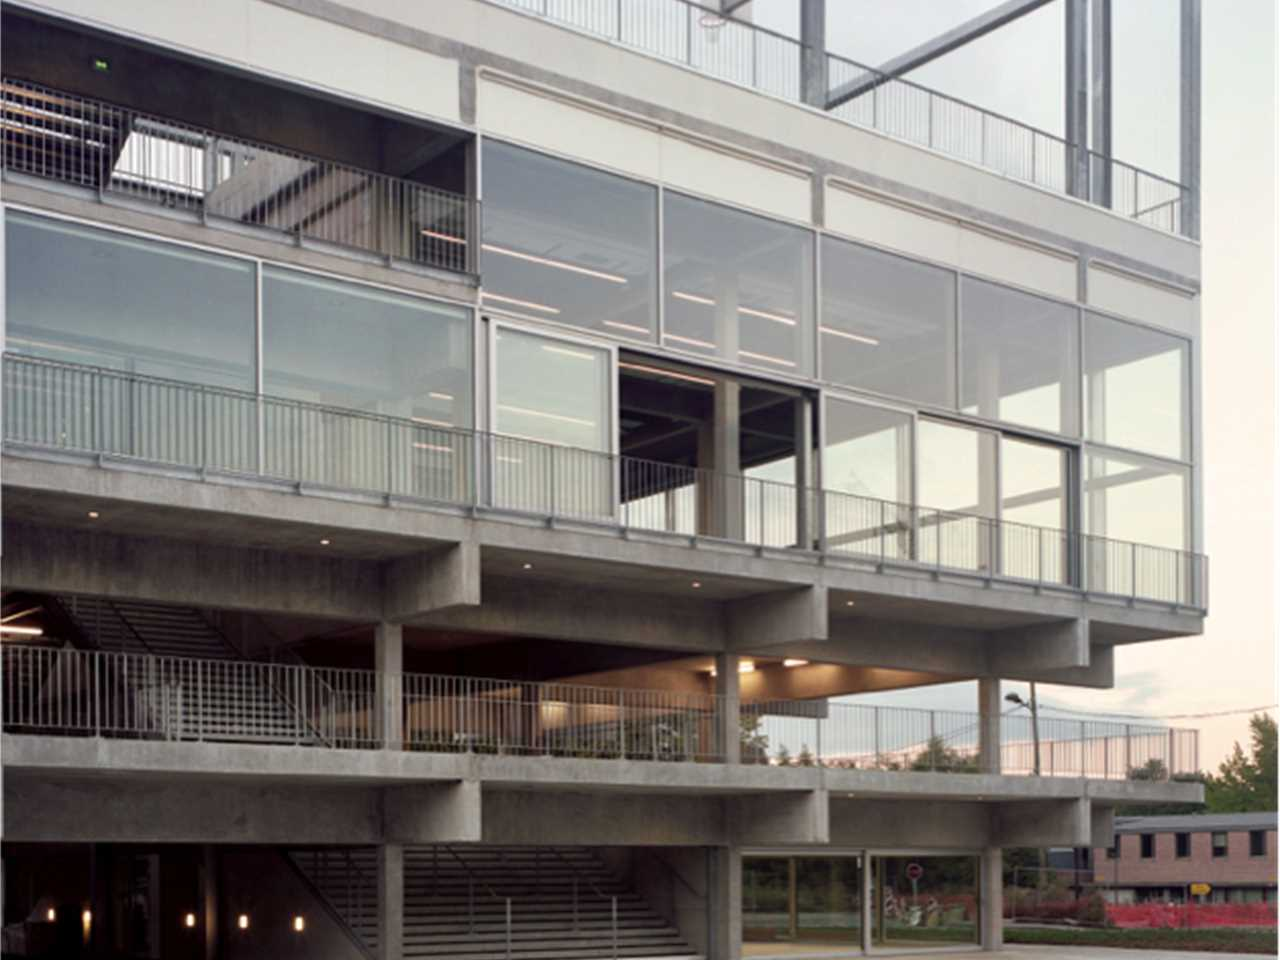 Public Condenser: Low-cost flexible university building, Paris, France